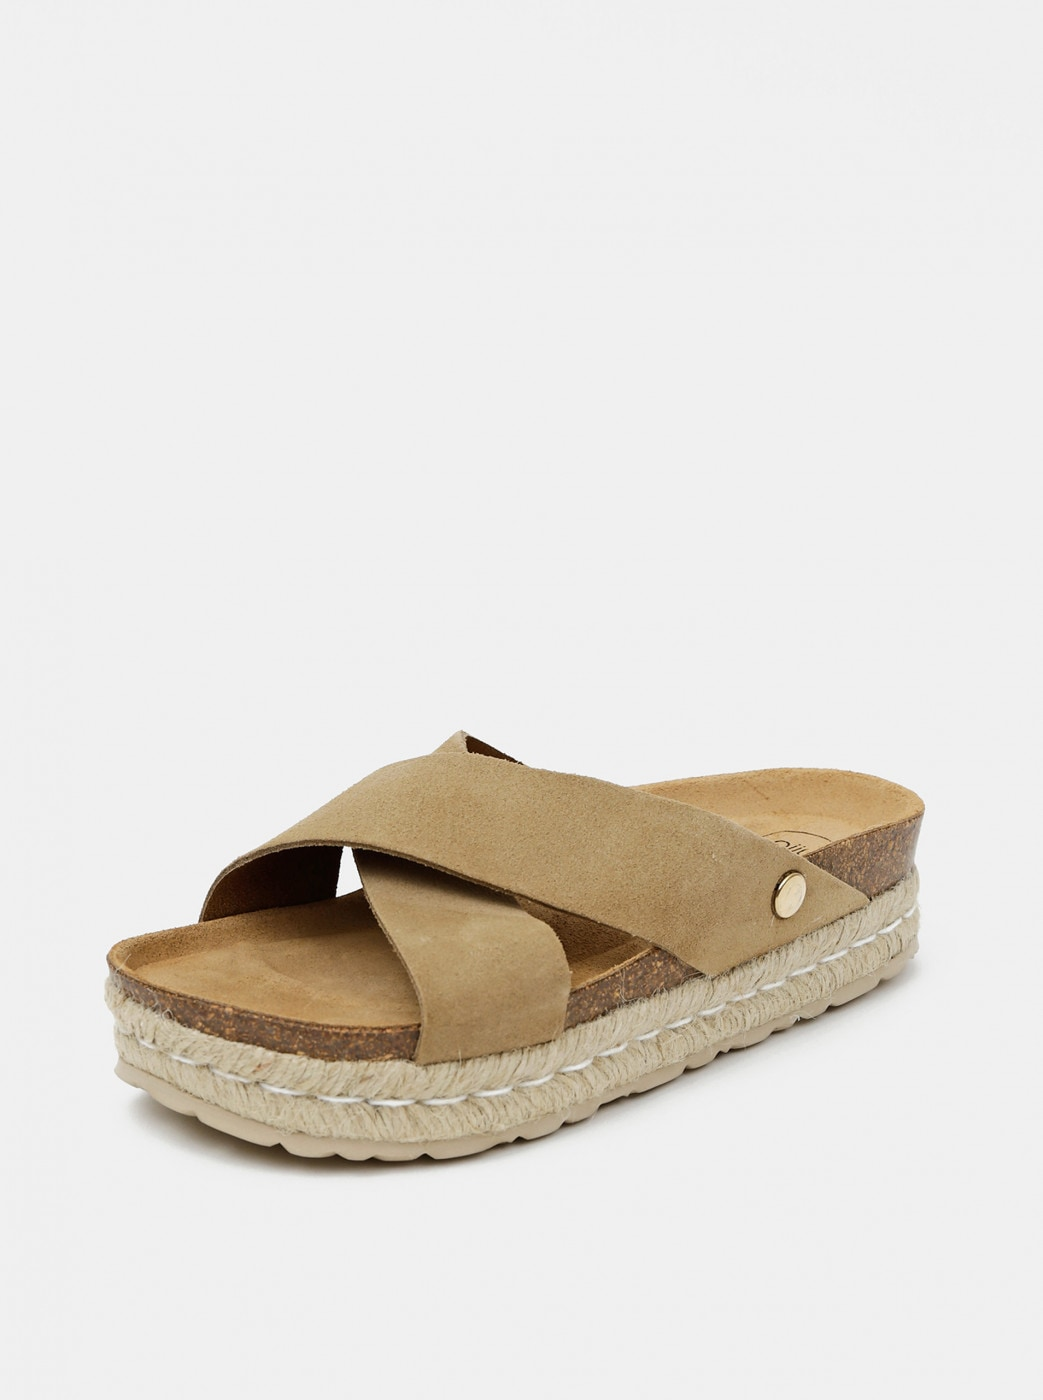 Beige Women's Suede Slippers OJJU